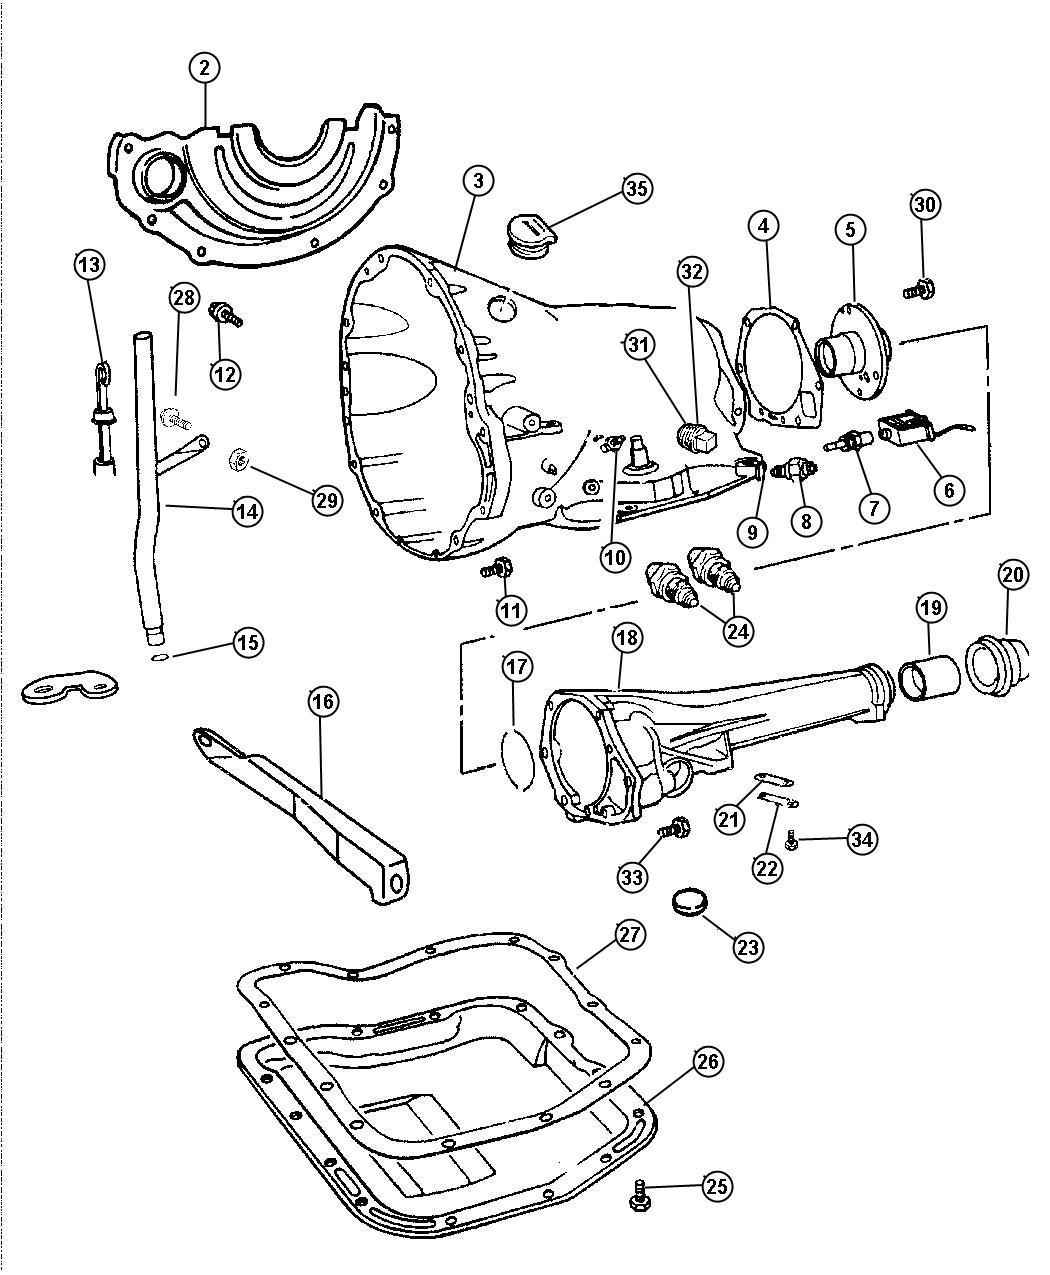 56038235 jeep connector wiring dgd factory chrysler